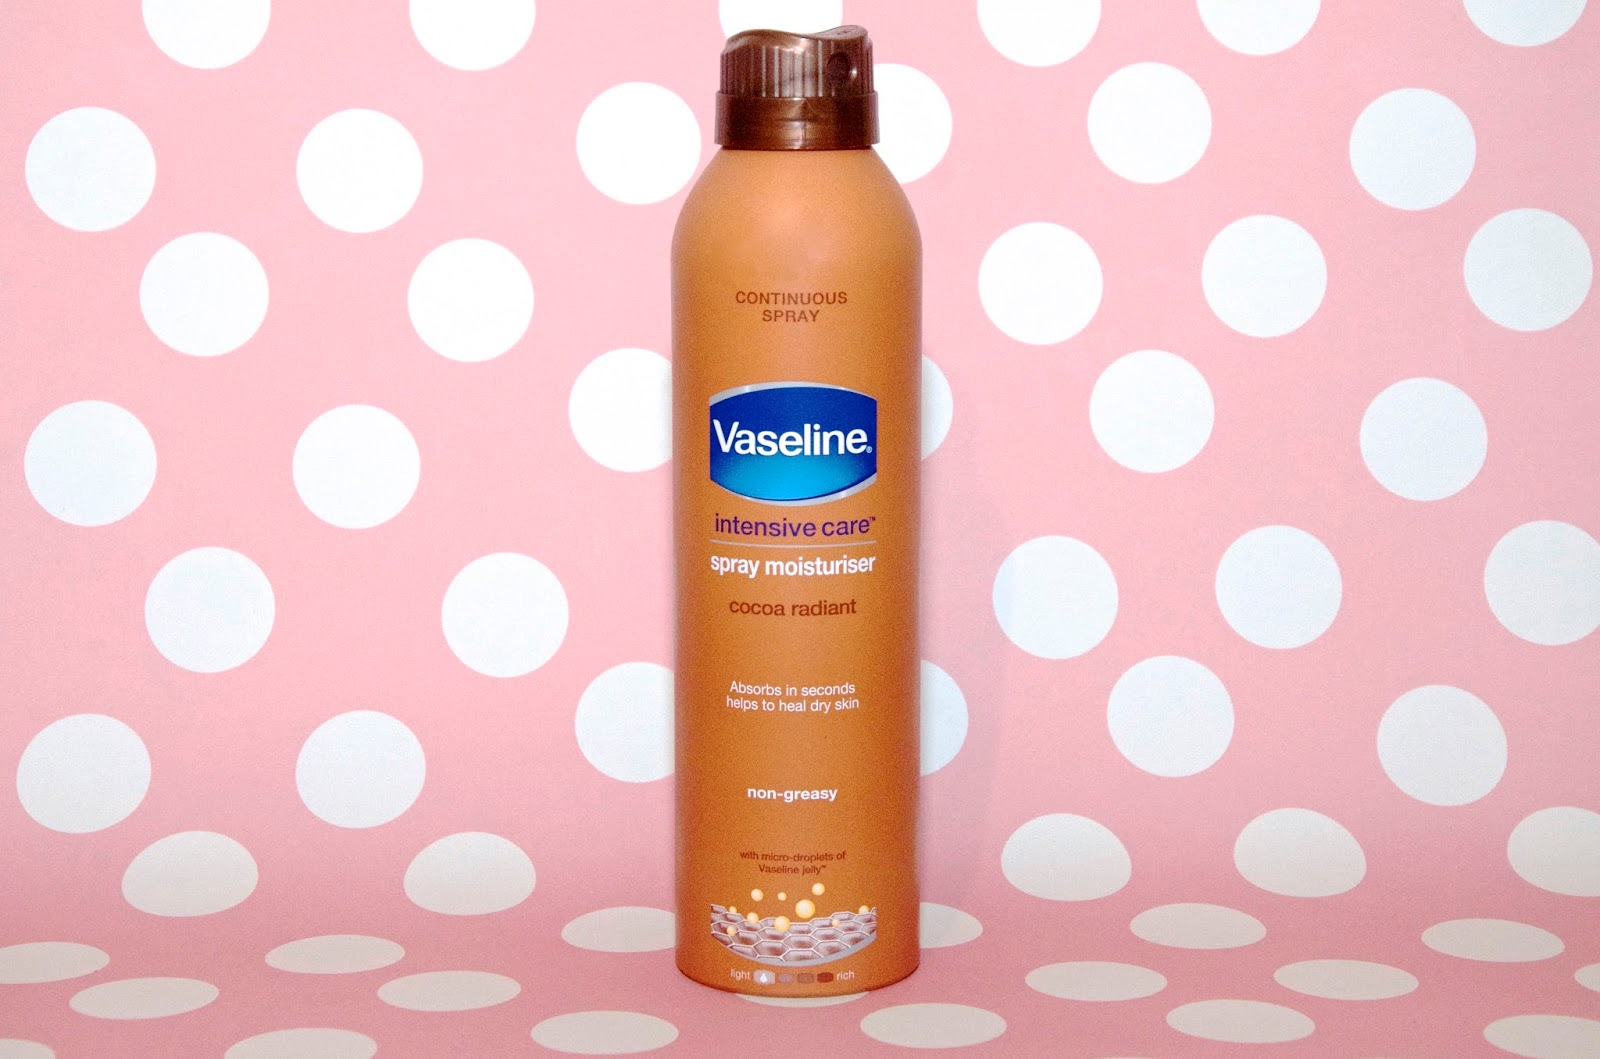 Vaseline Intensive Care Spray Moisturiser in Cocoa Radiant